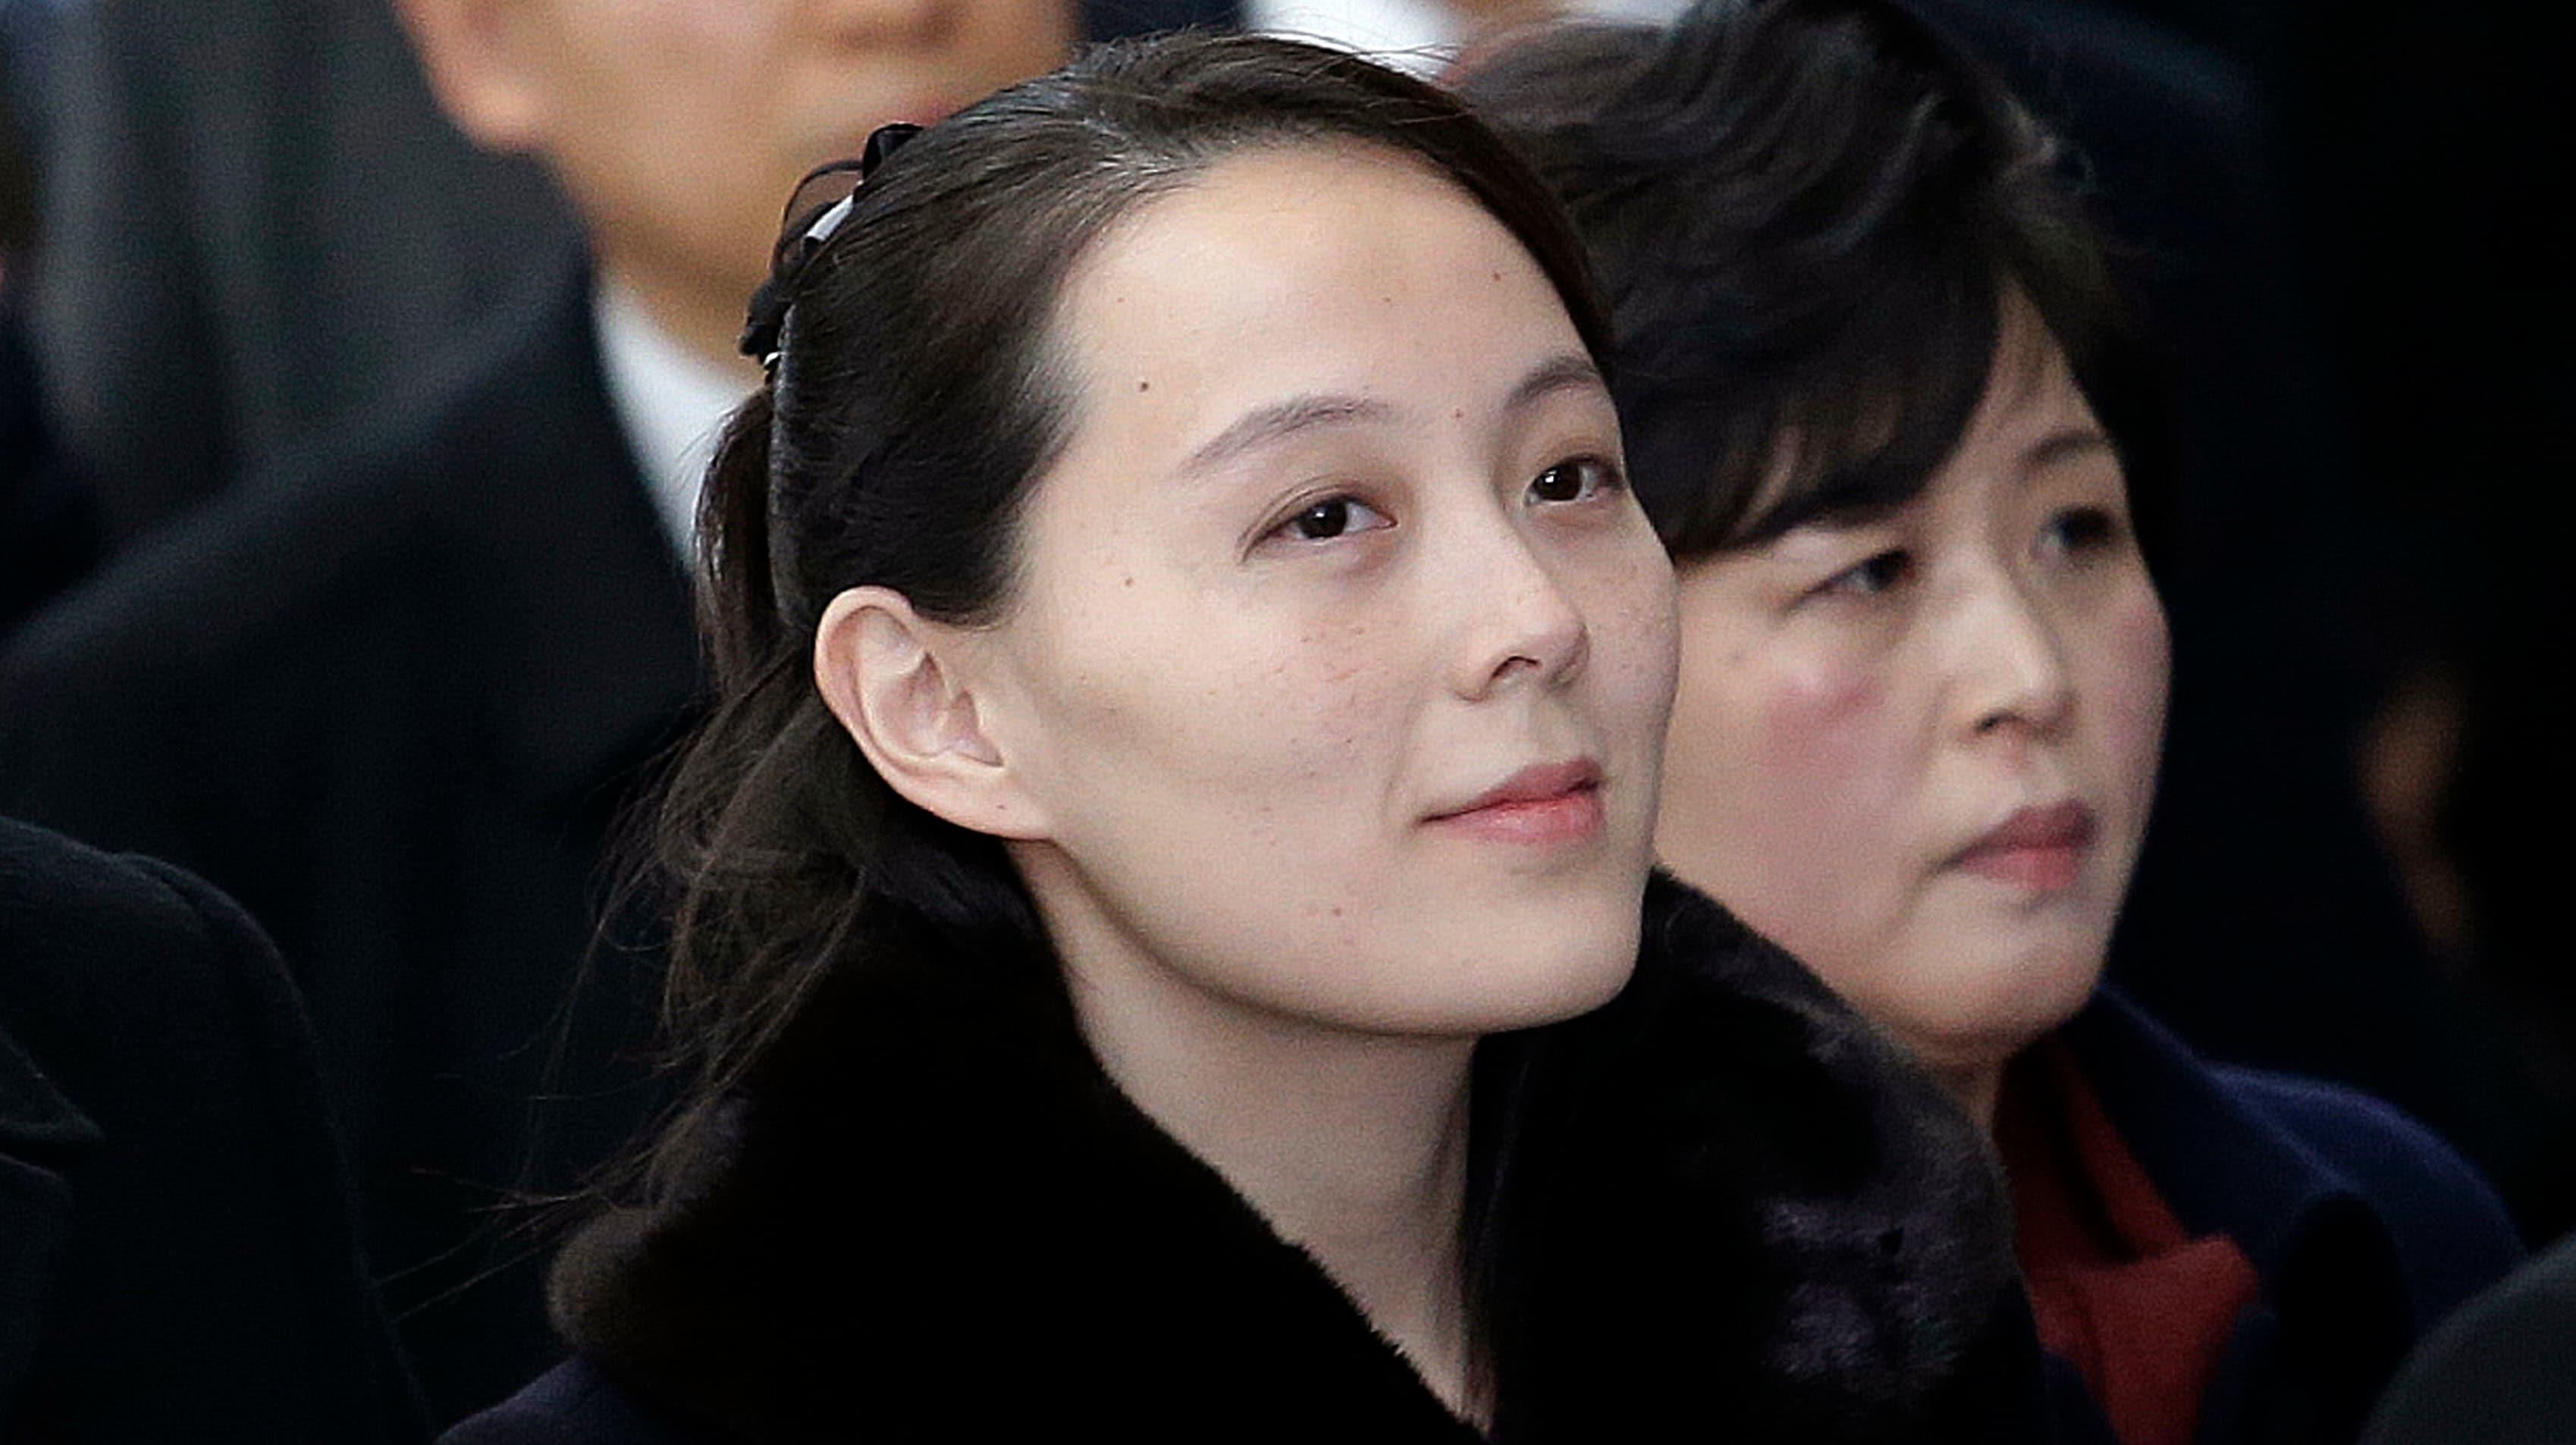 Kim Yo-jong arrives in South Korea: What we know about the North Korean 'princess'